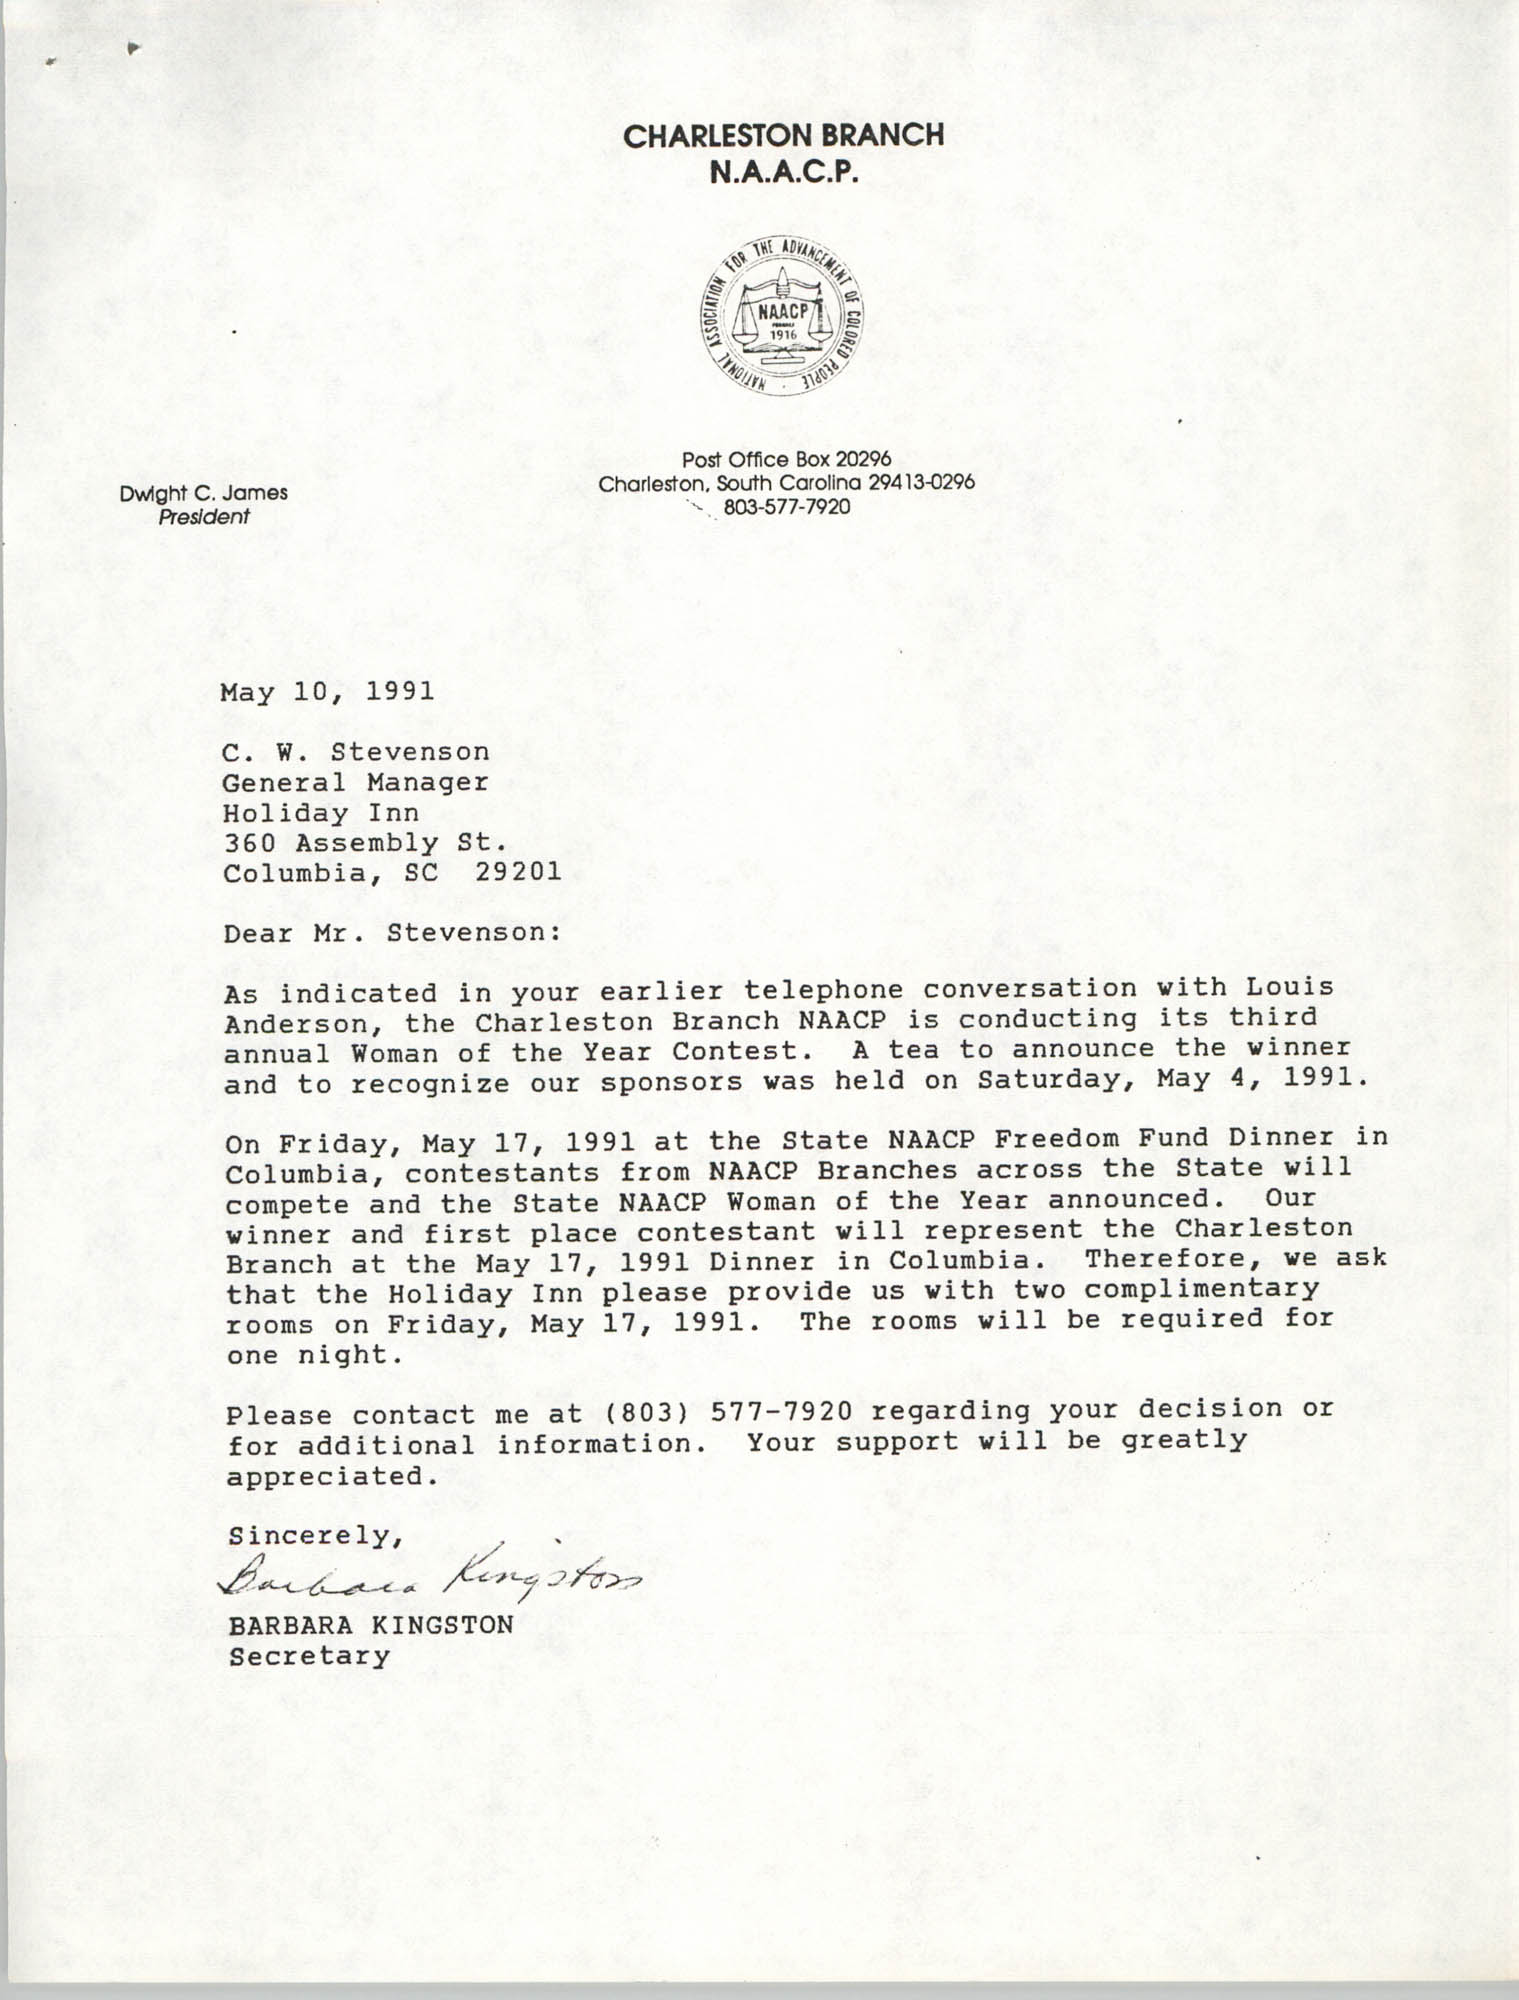 Letter from Barbara Kingston to C. W. Stevenson, May 10, 1991